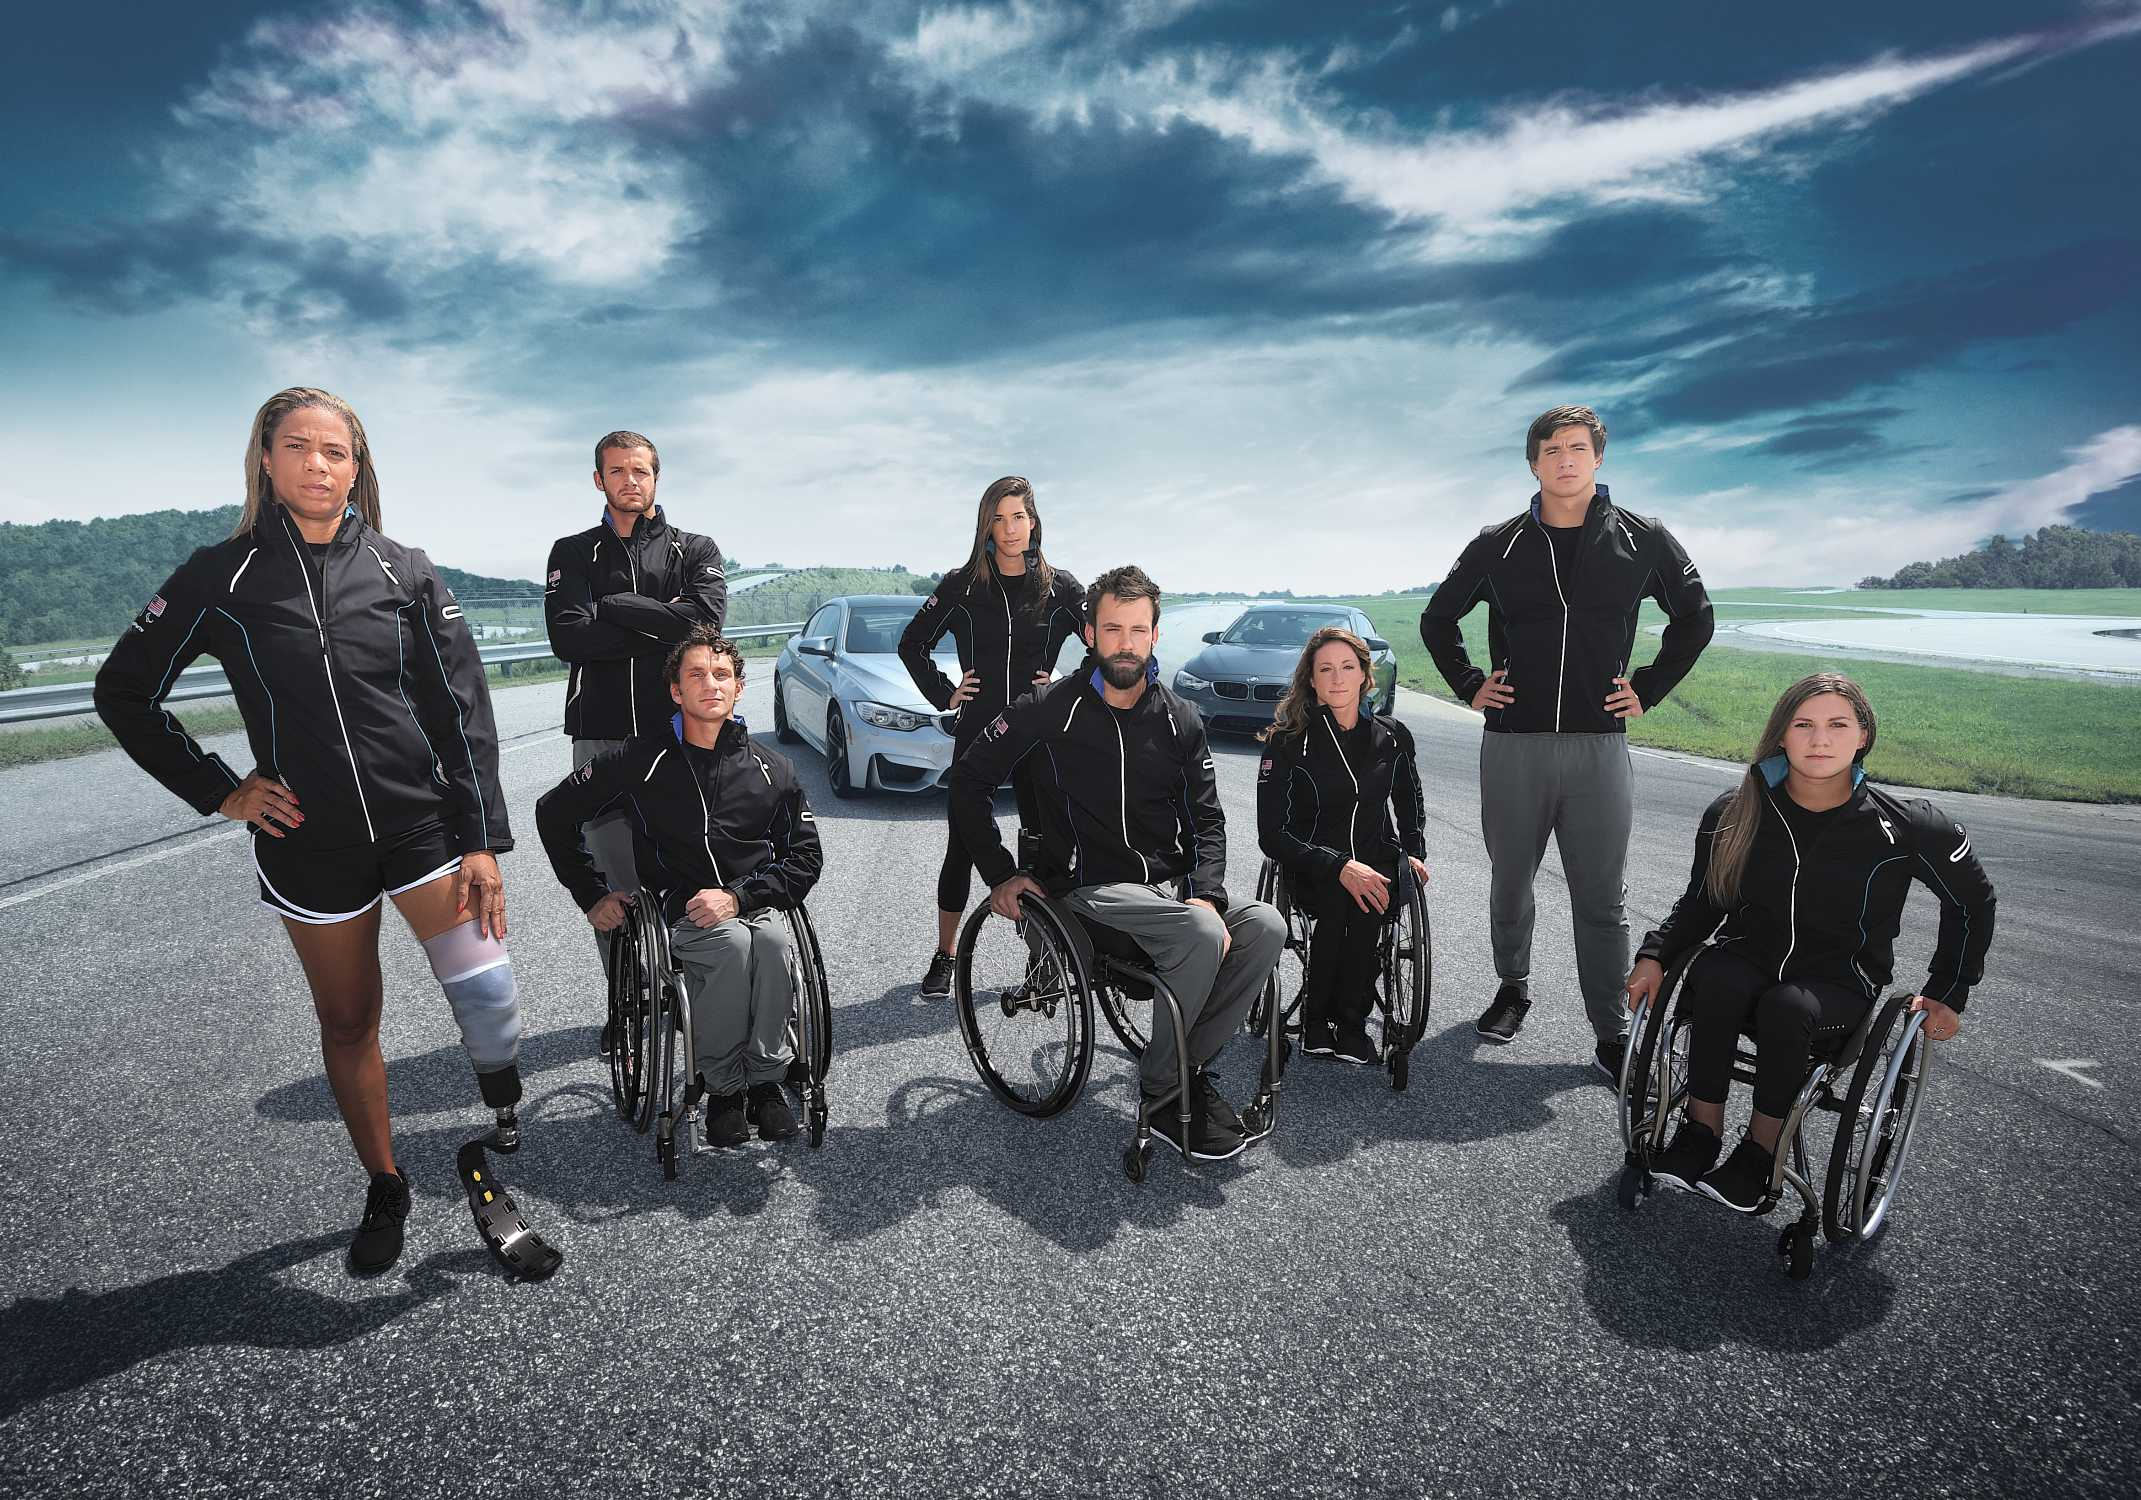 BMW North America >> BMW Unveils Roster of U.S. 'Performance Team' Athletes for Rio 2016 Olympic and Paralympic Games